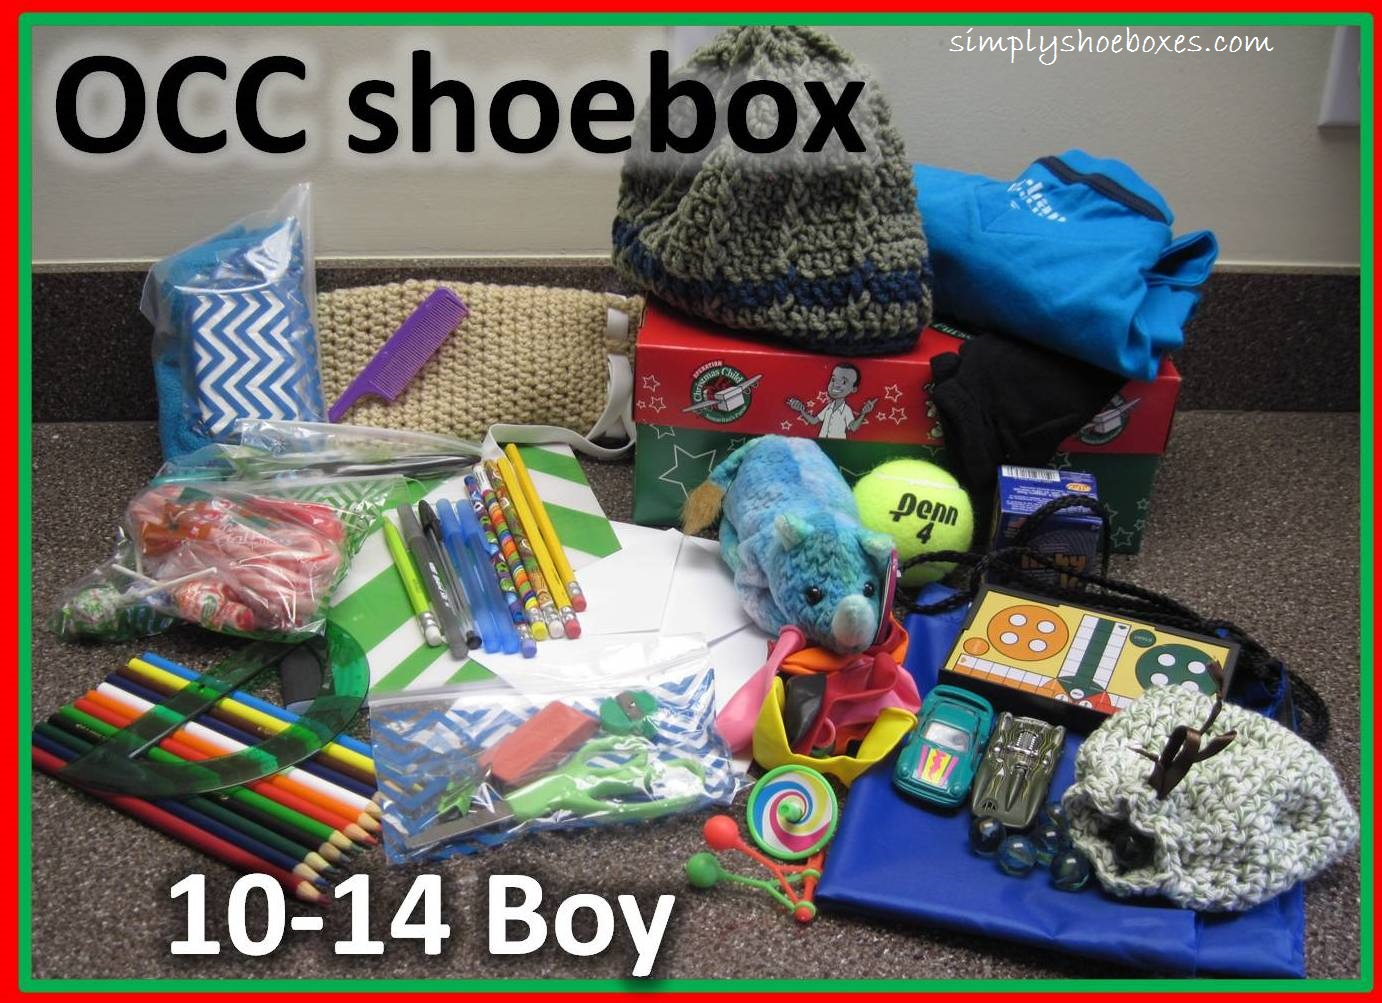 Simply Shoeboxes: Operation Christmas Child Shoebox Packed for 10-14 ...